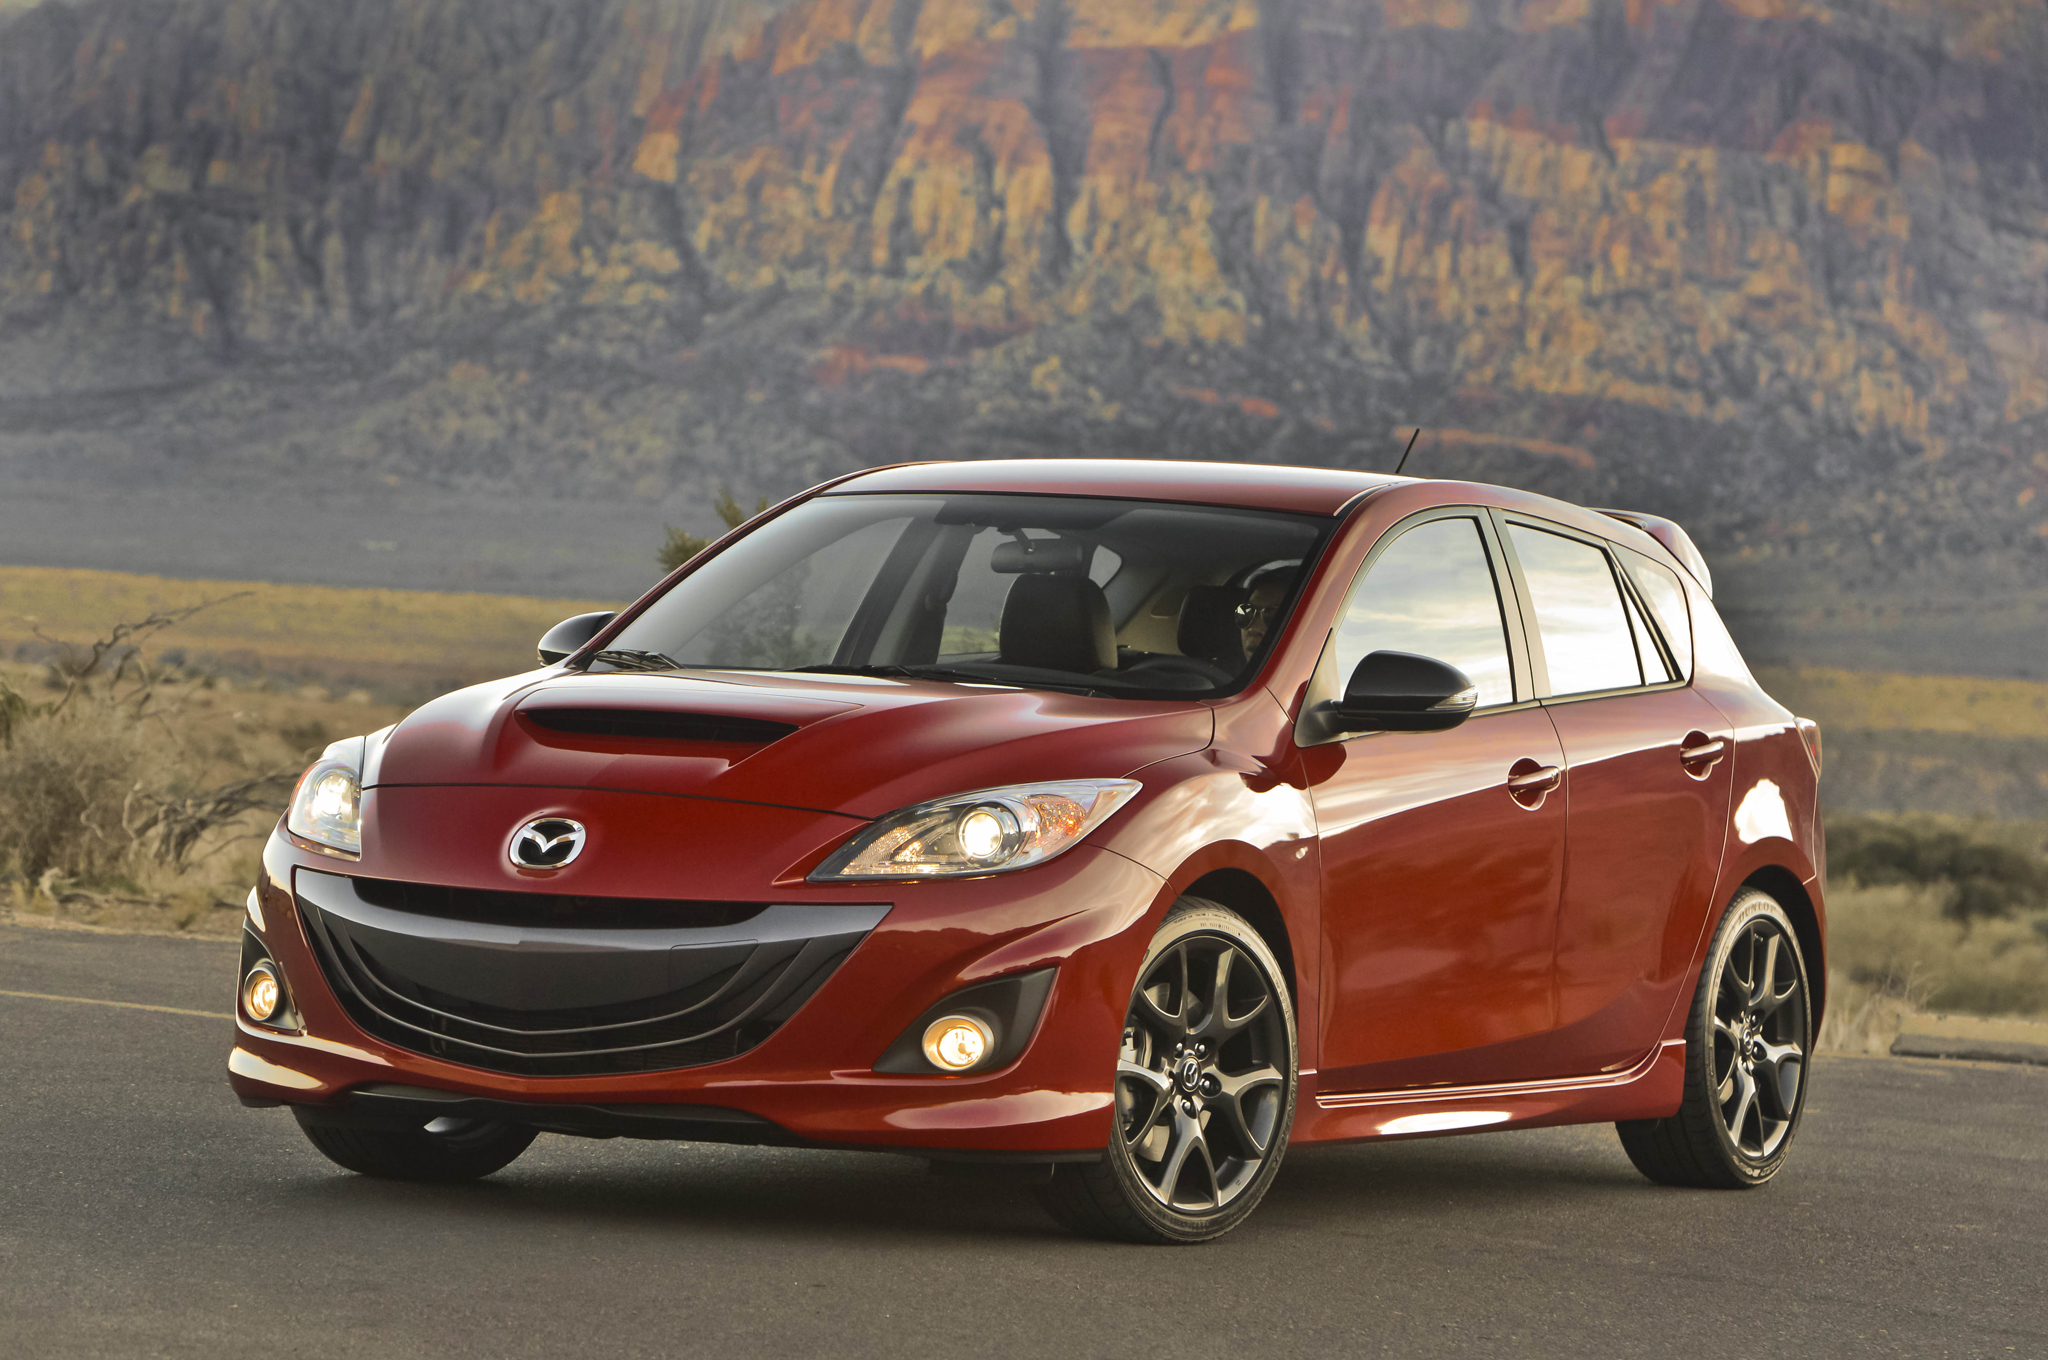 2013-mazda-mazdaspeed3-front-three-quarters-11